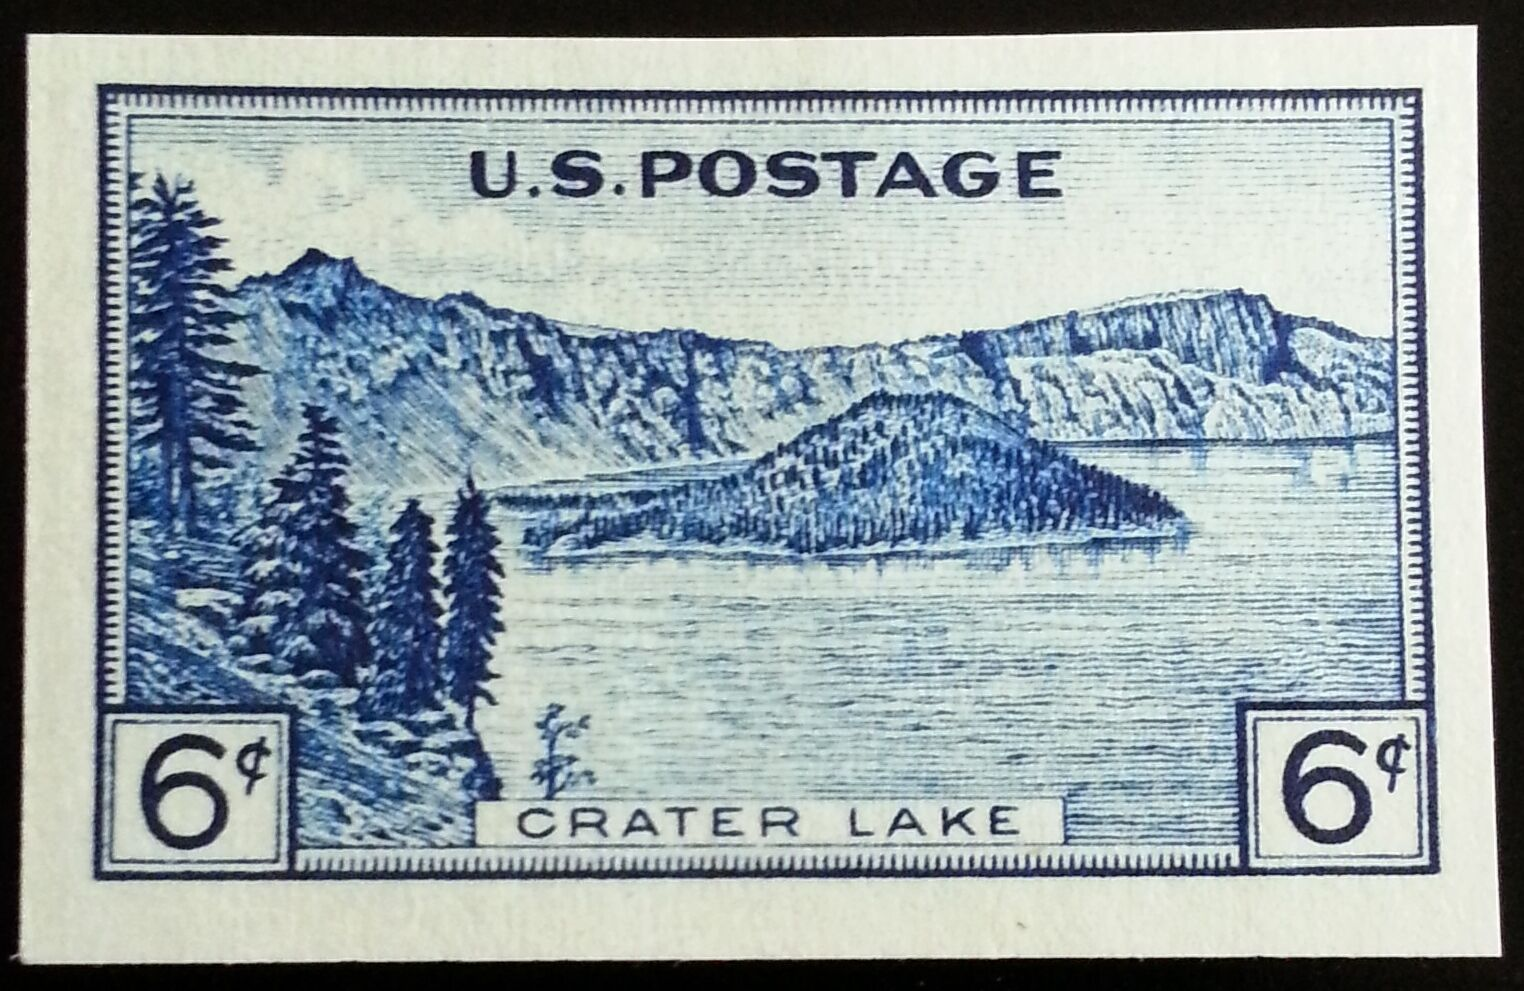 1935 6c Crater Lake, Imperforate Single issued without